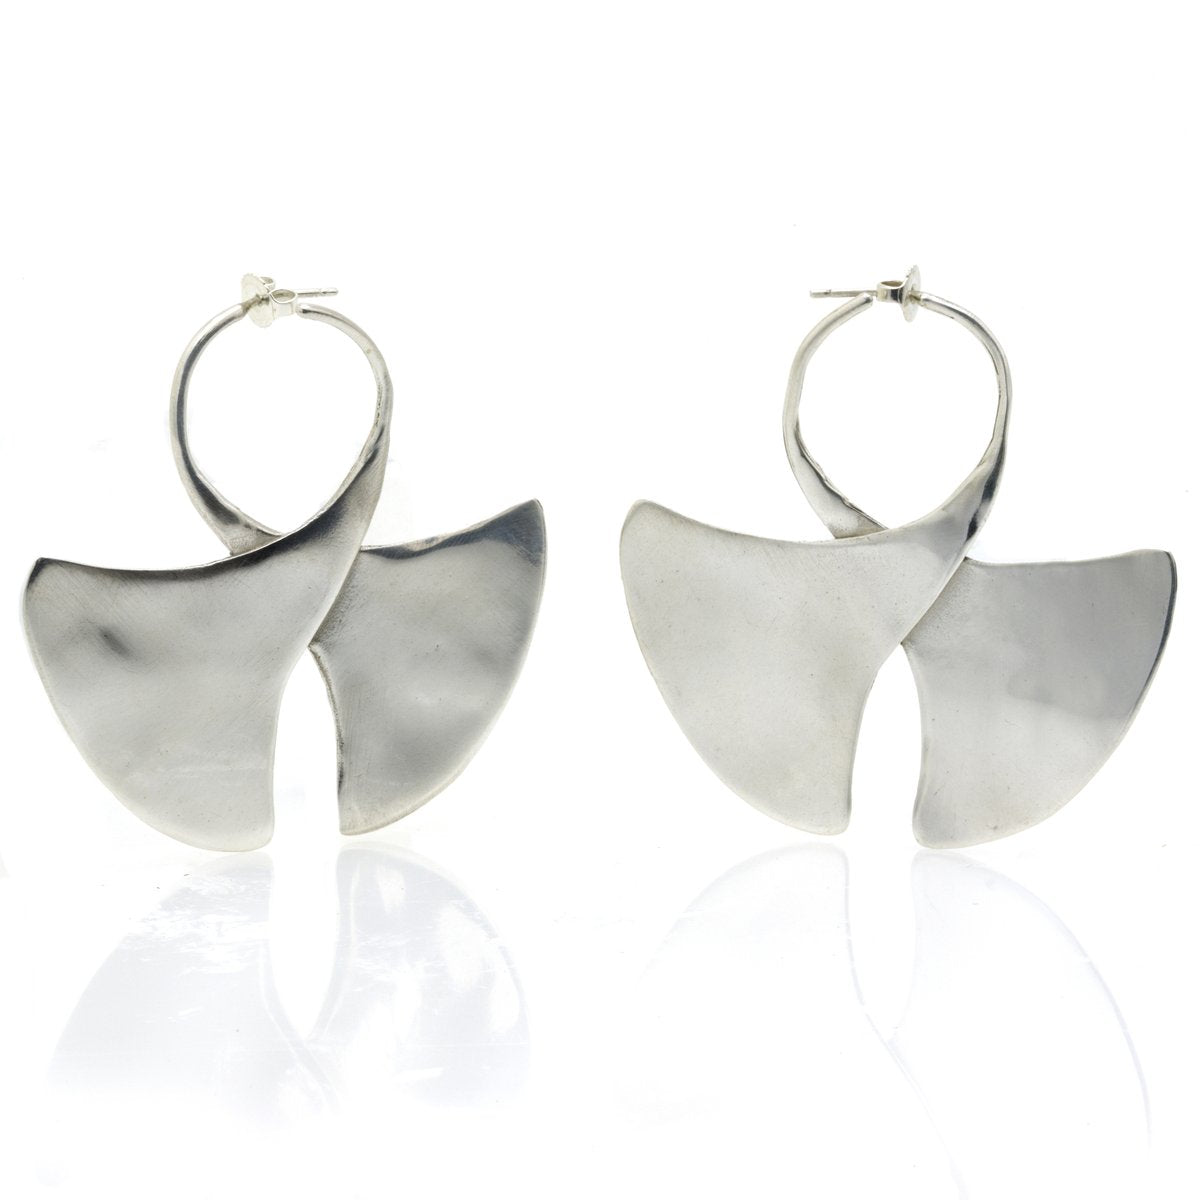 Ariana Boussard-Reifel Zamble Earrings